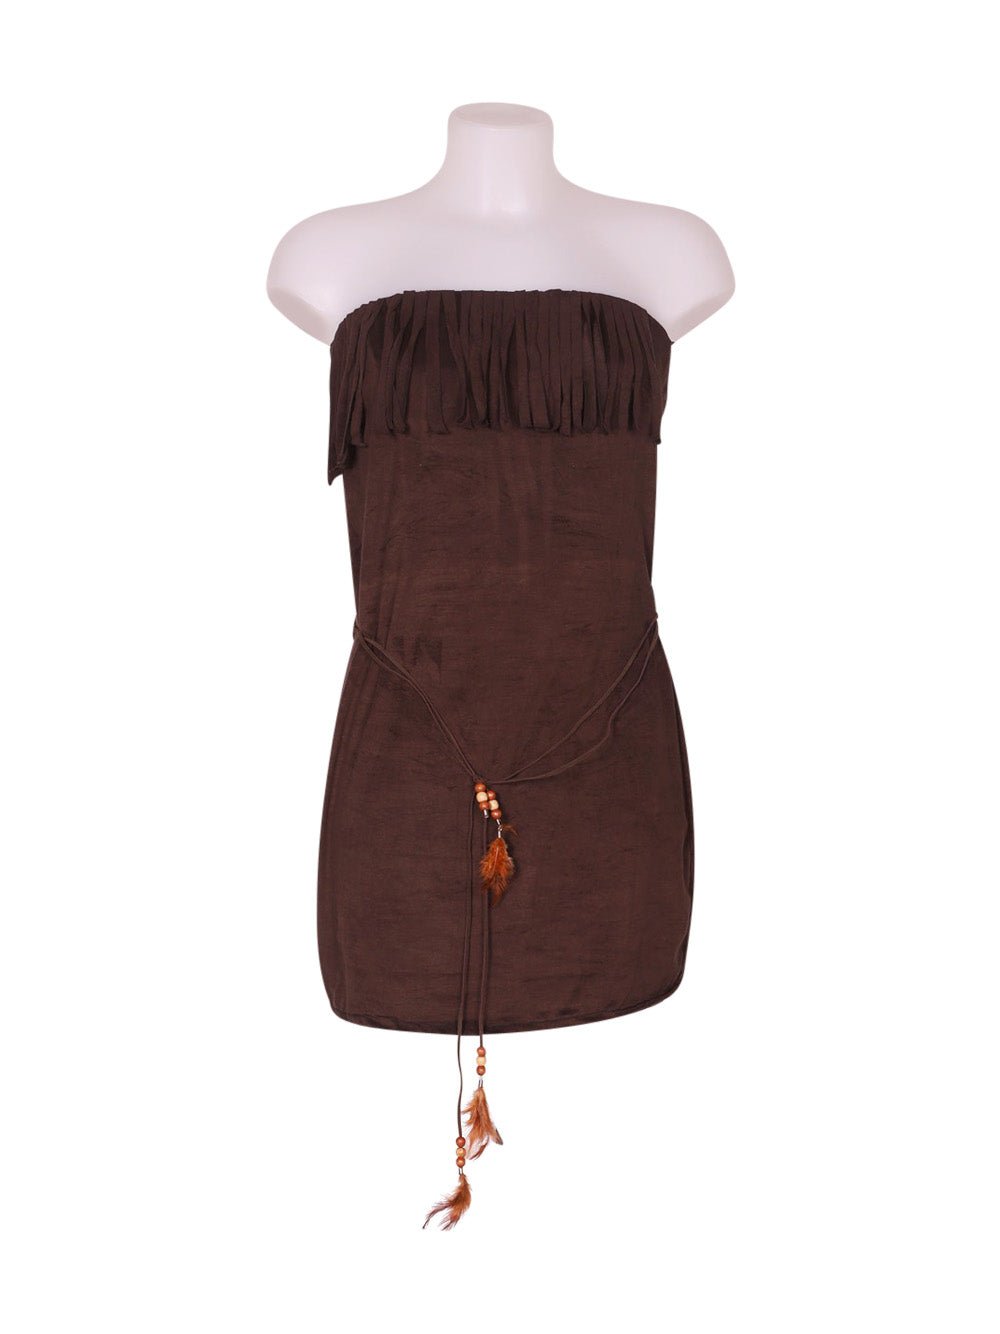 Front photo of Preloved unbra Brown Woman's dress - size 6/XS